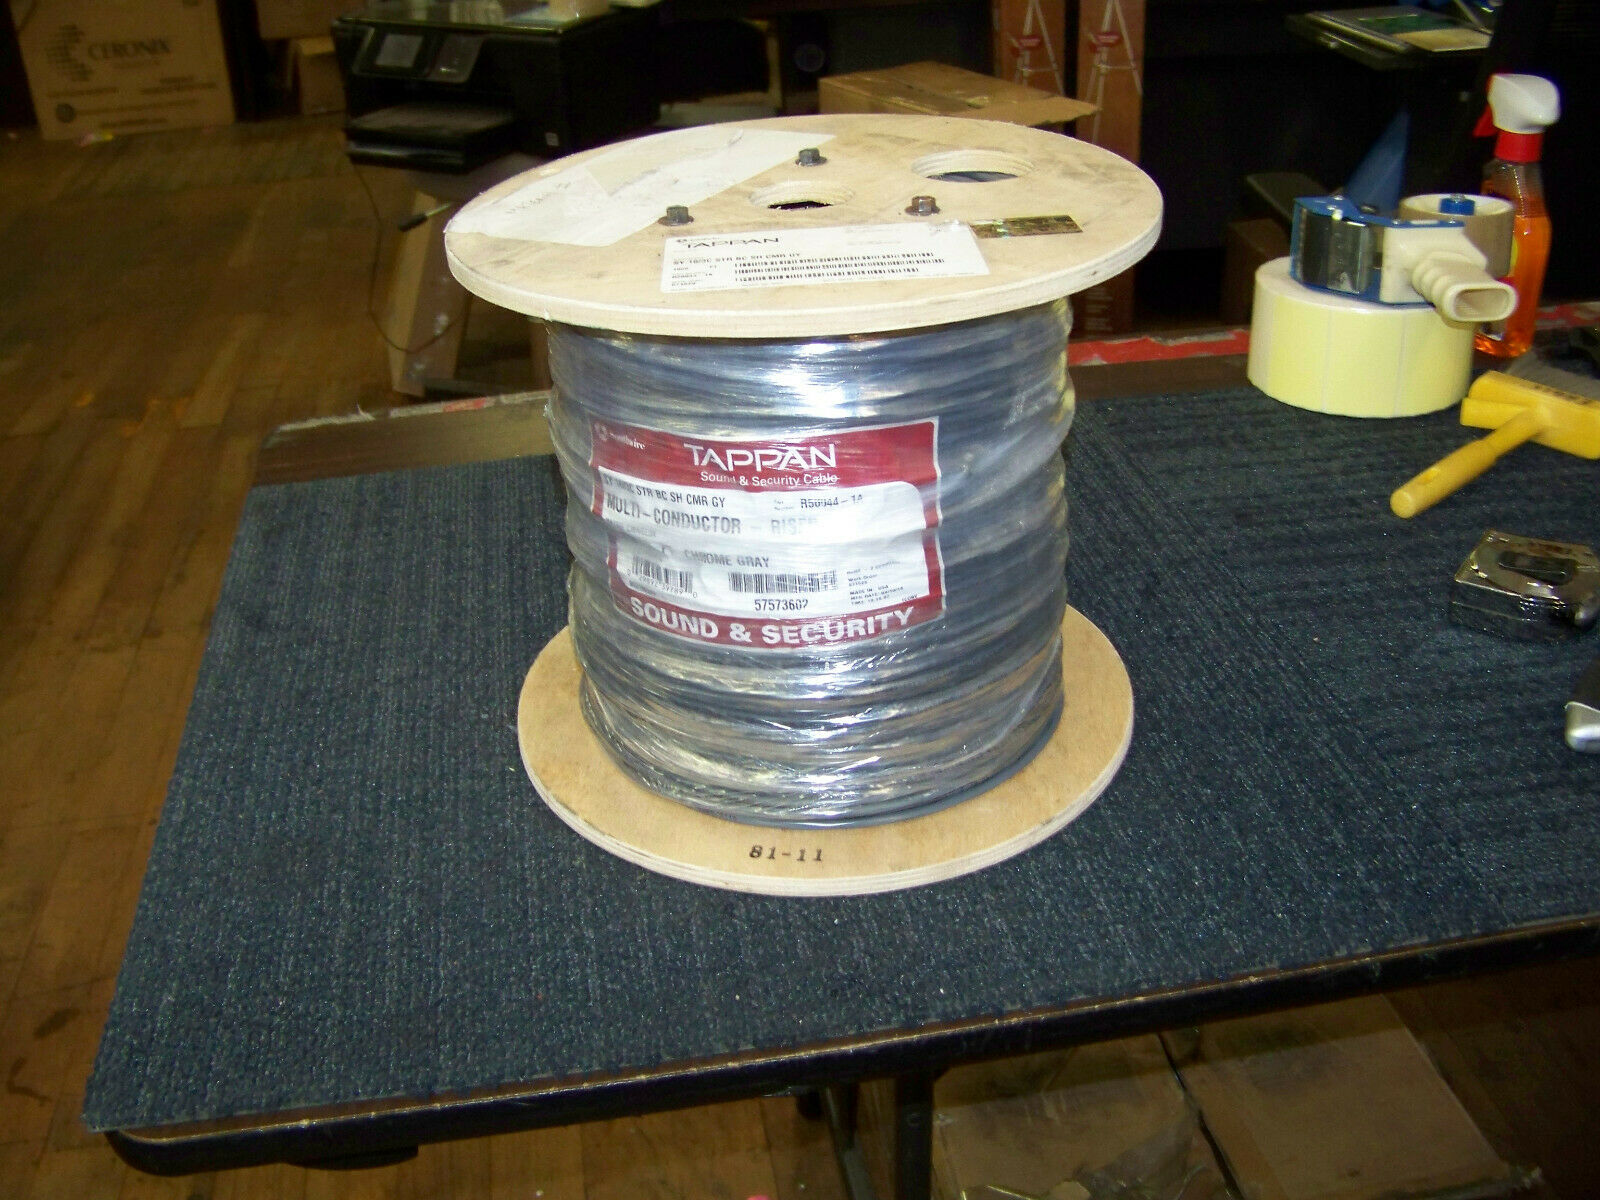 Southwire Tappan Sound & Security Cable SY 16 3C 1000 Ft. R50044-1A New